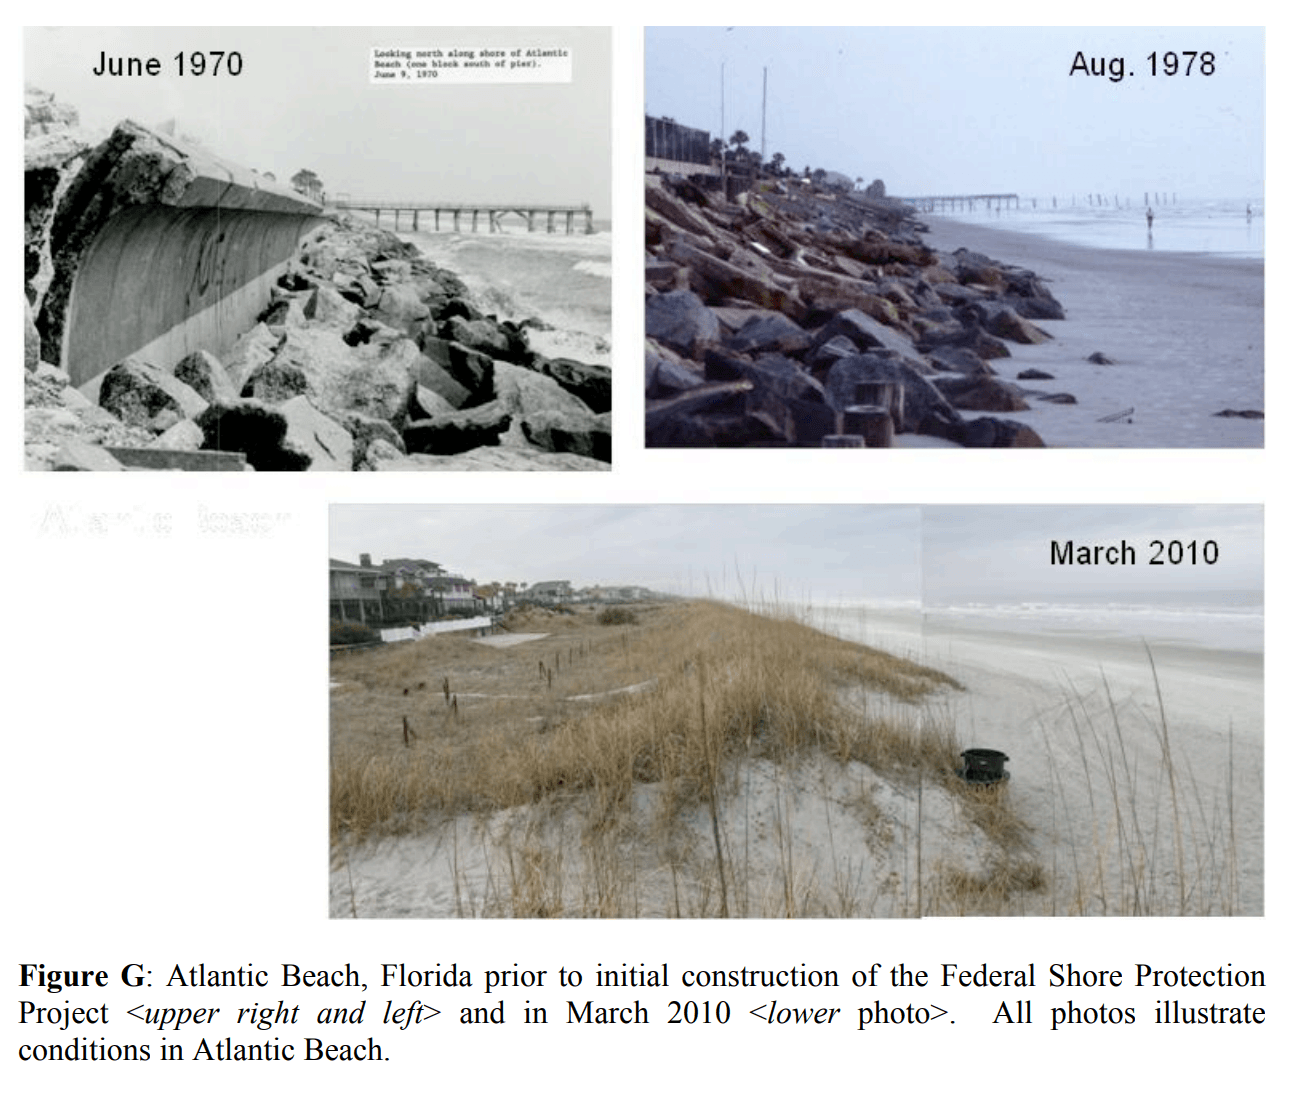 CoastalConstructionHistory